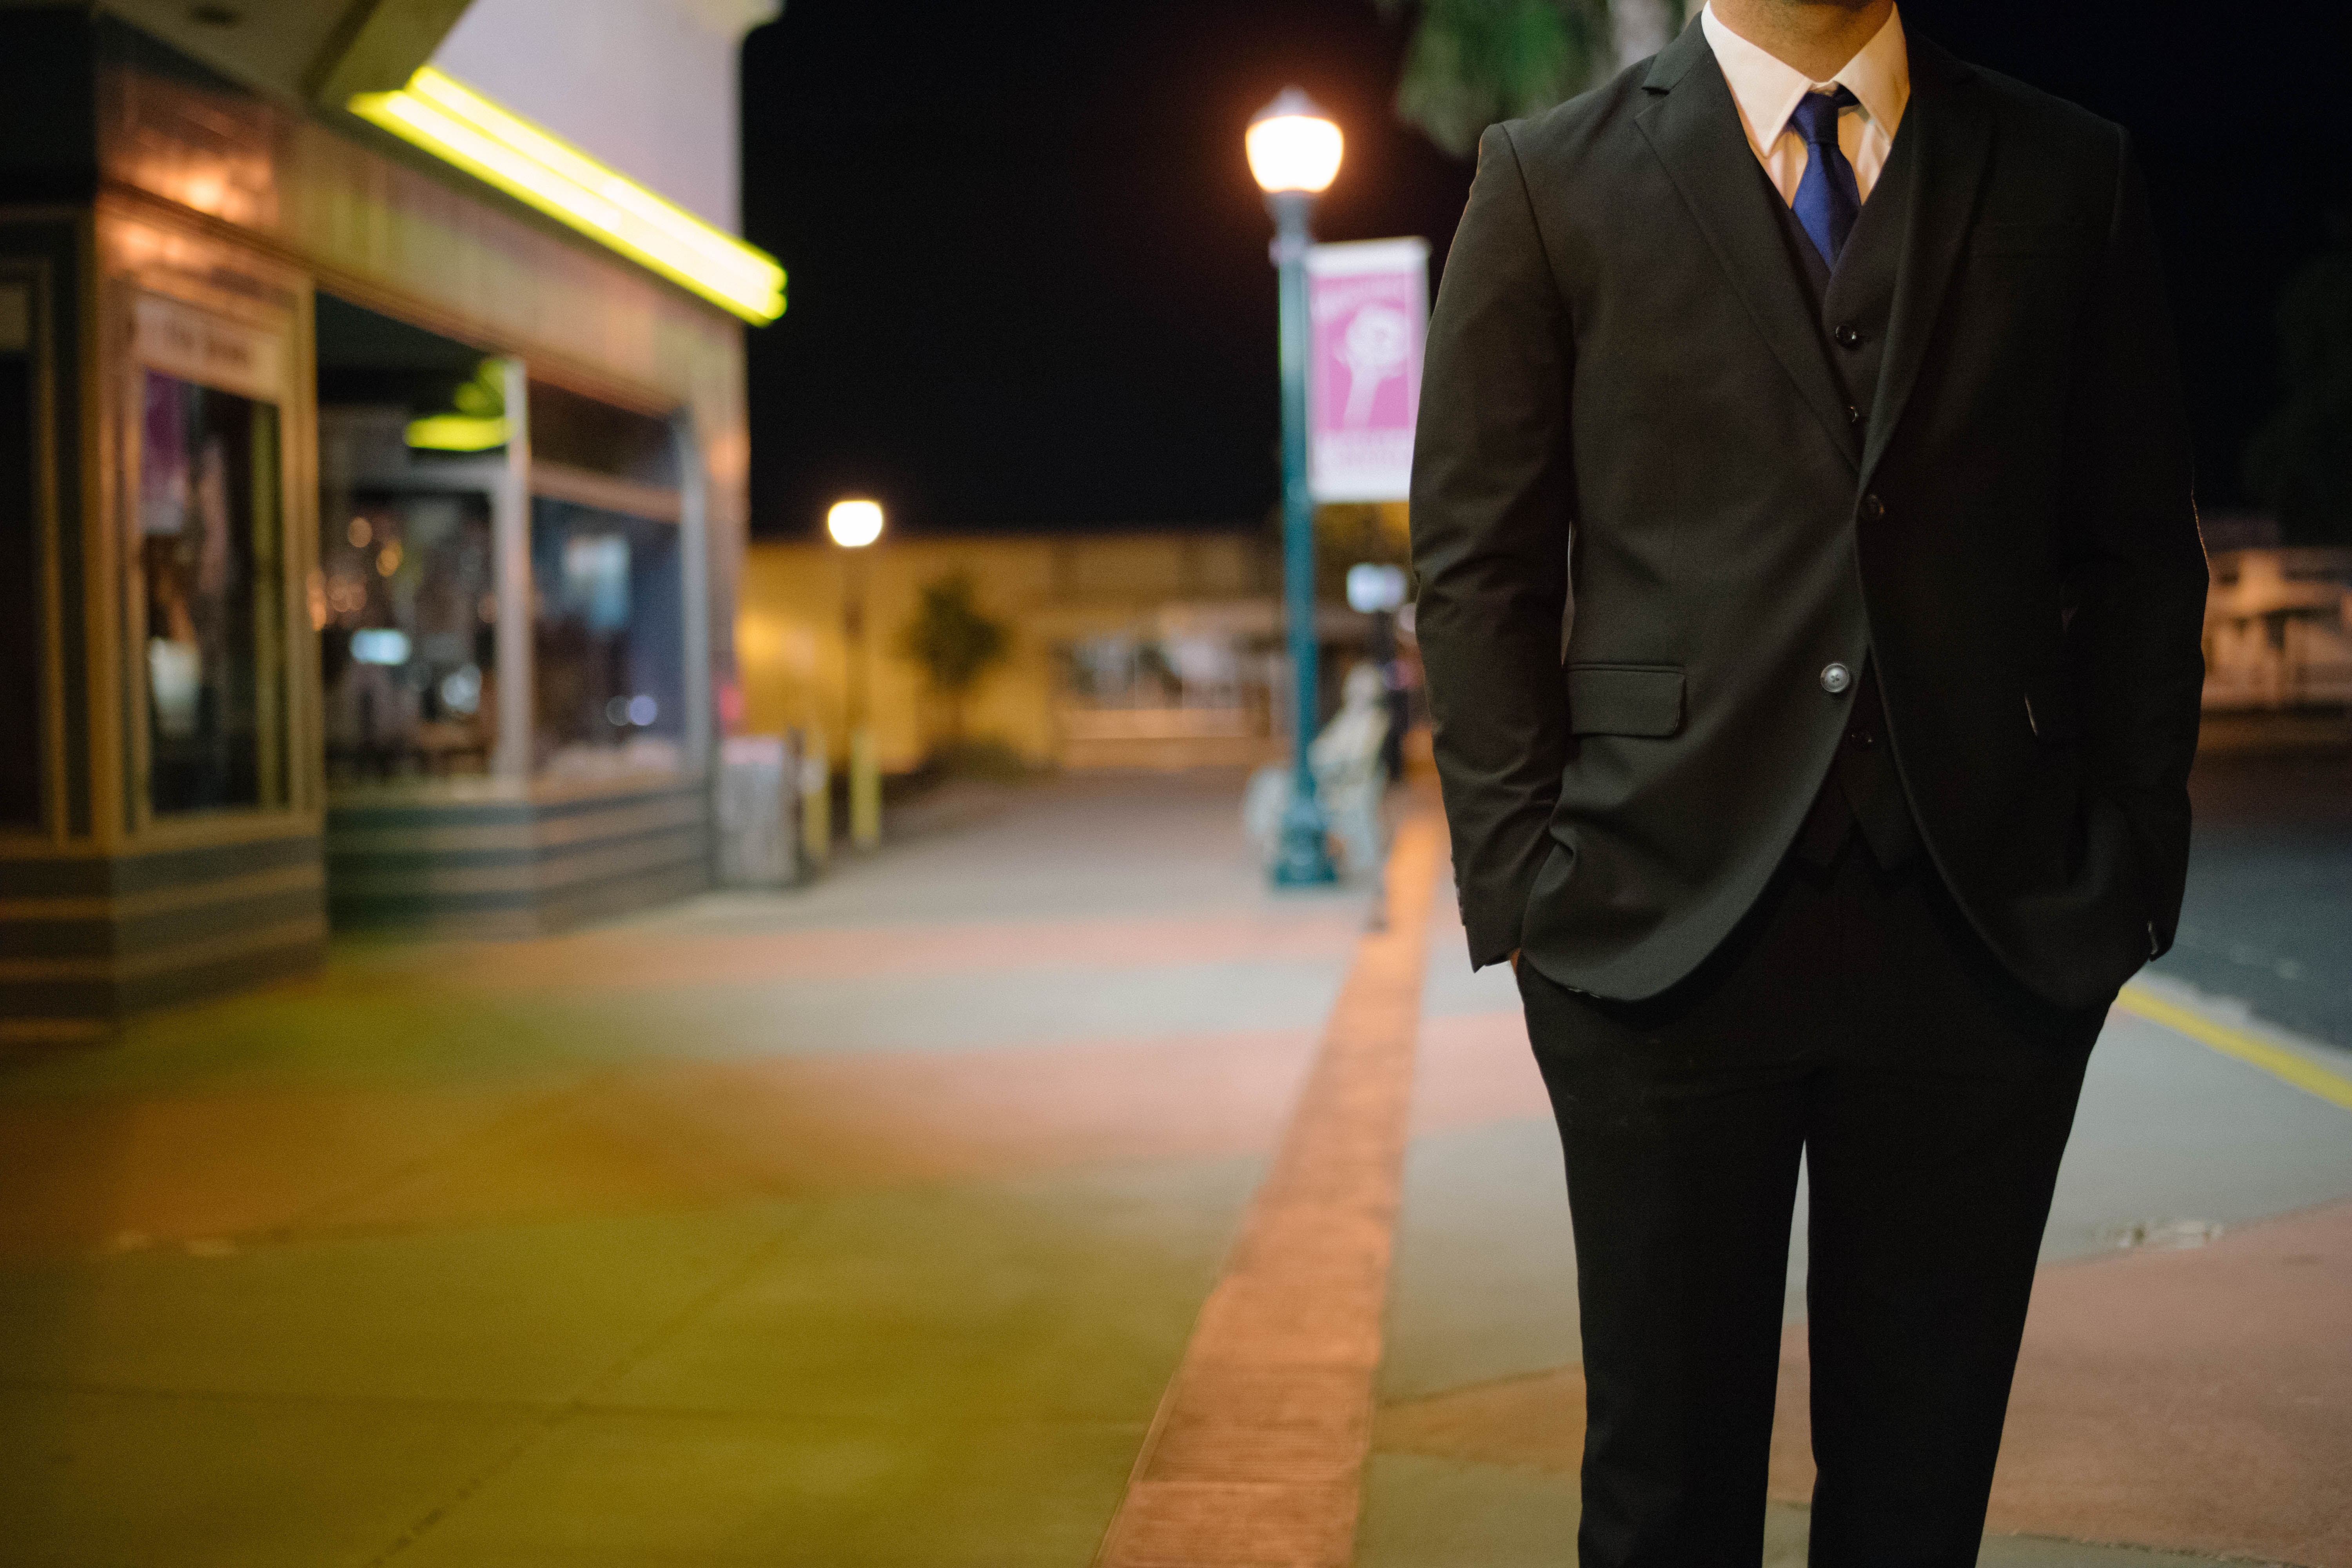 A man in a black suit standing in the street with his hands in his pockets